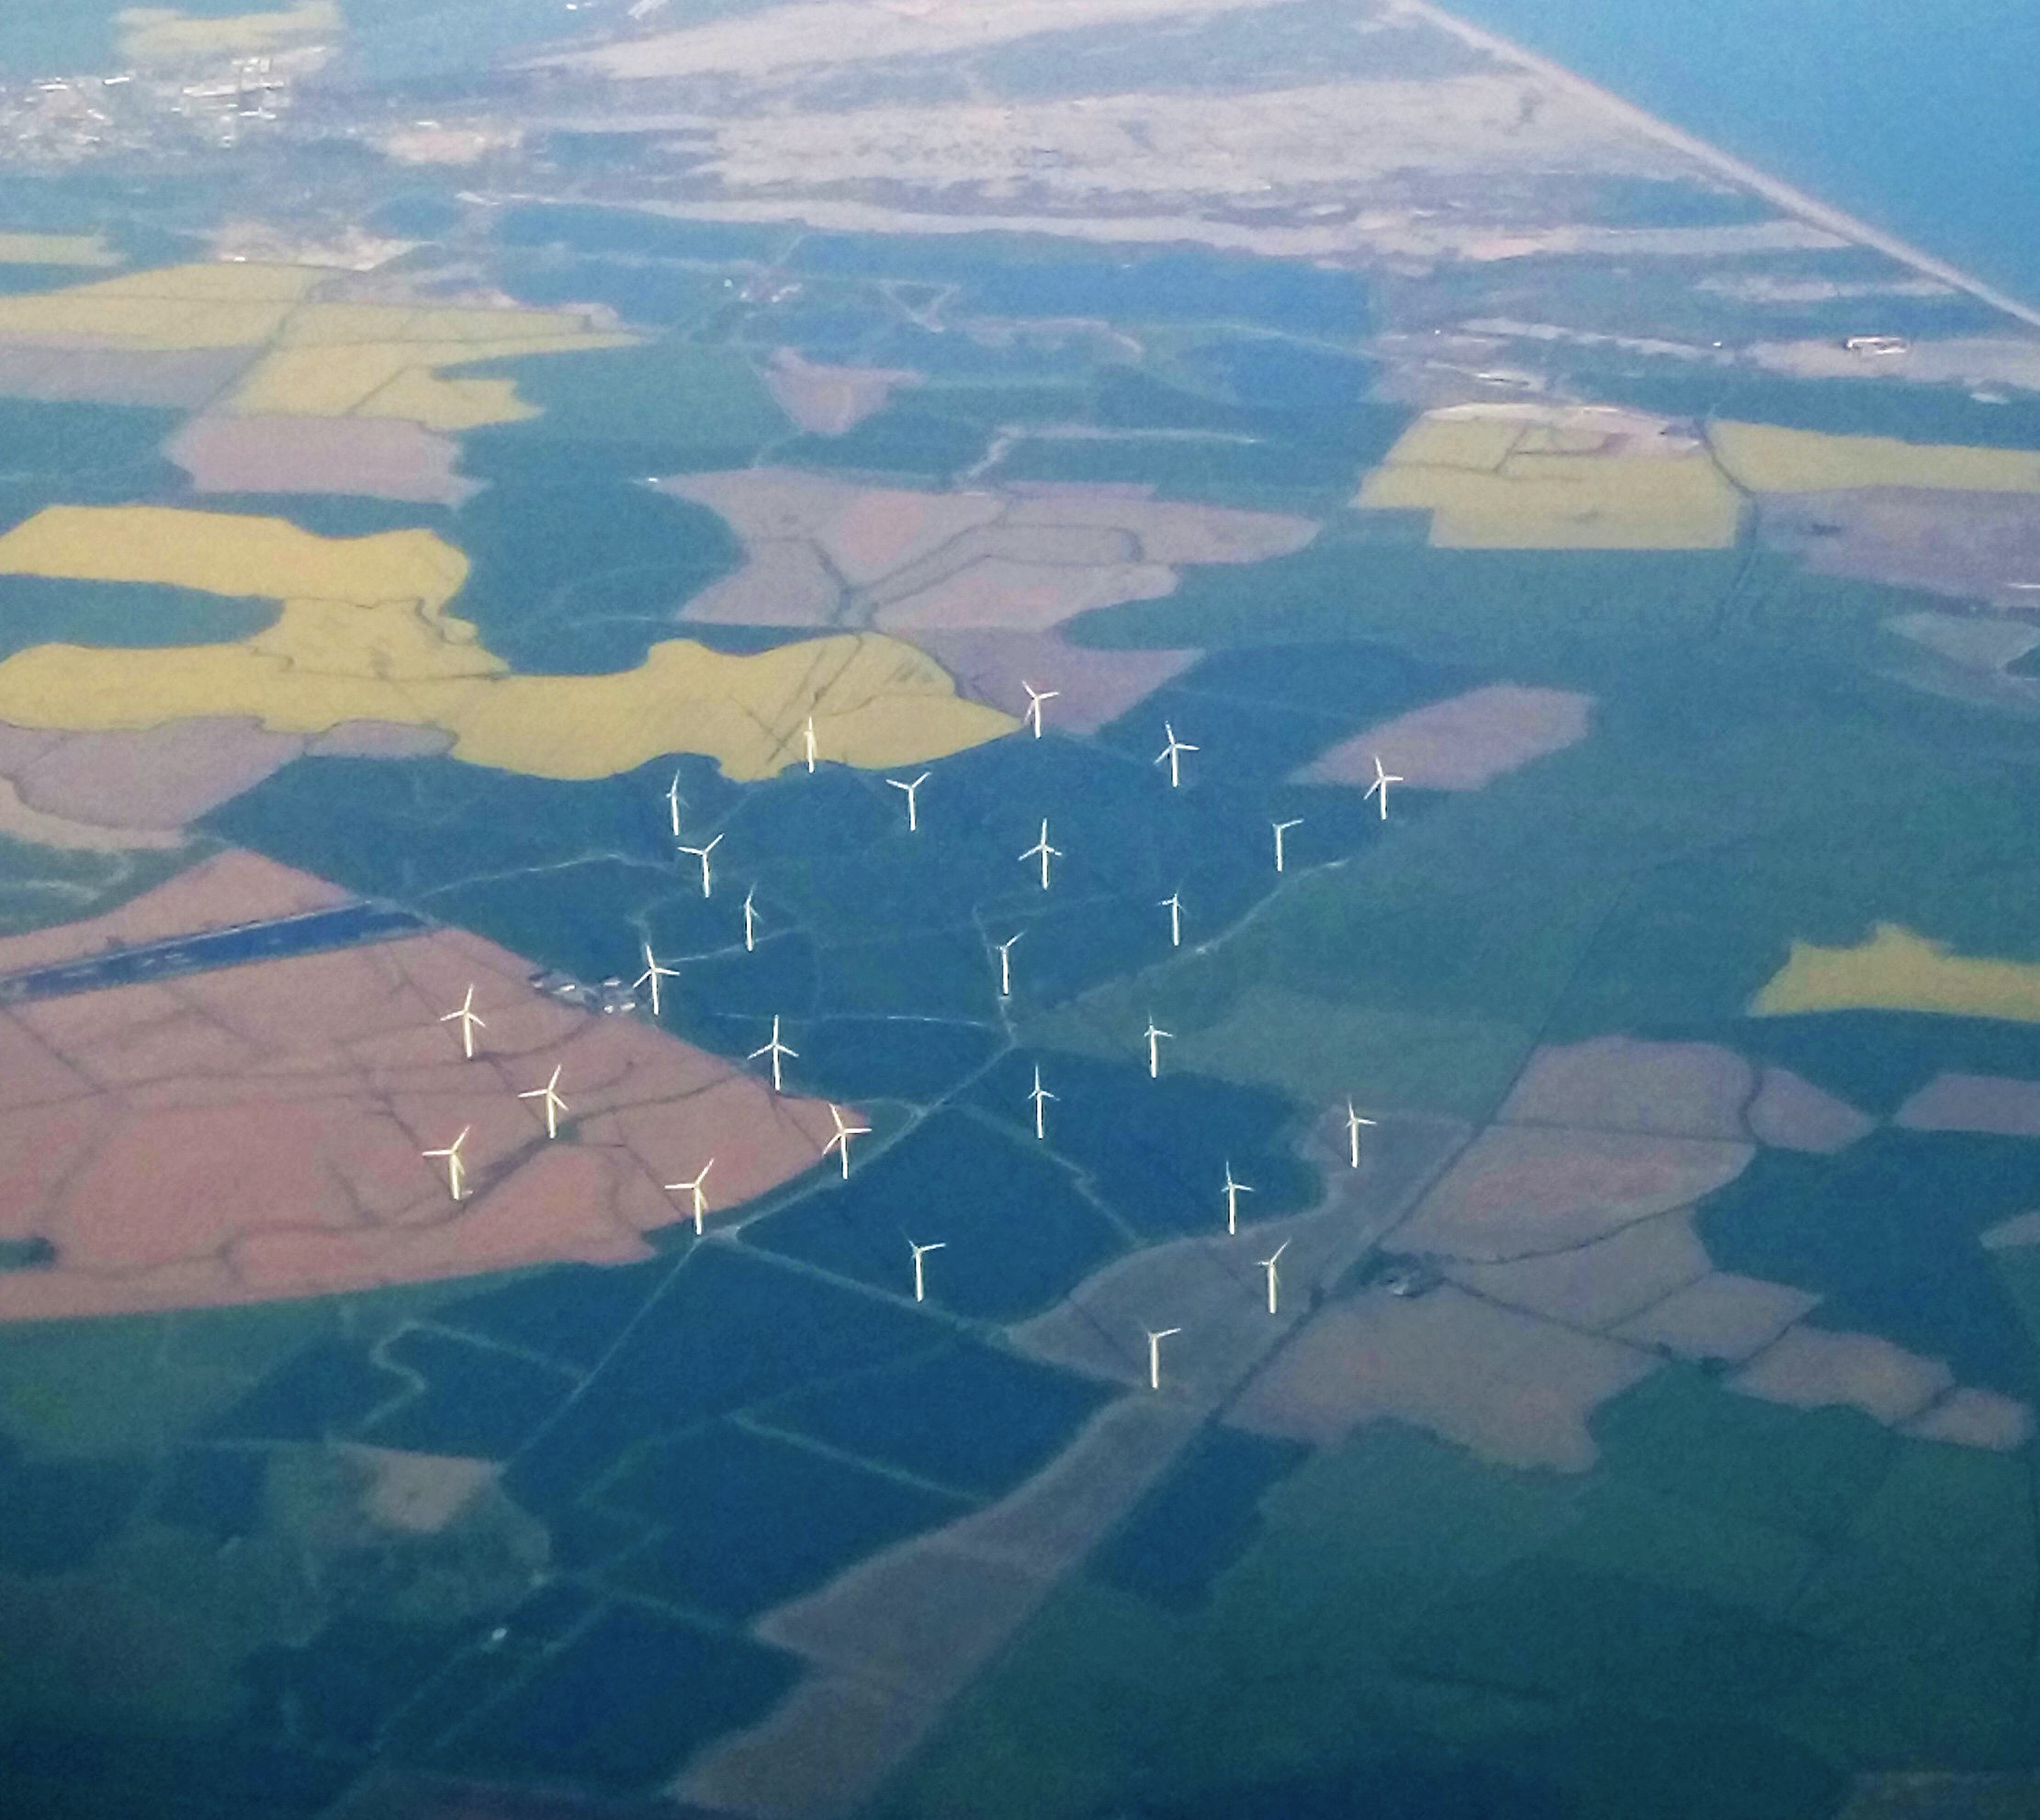 windfarm aerial view v2